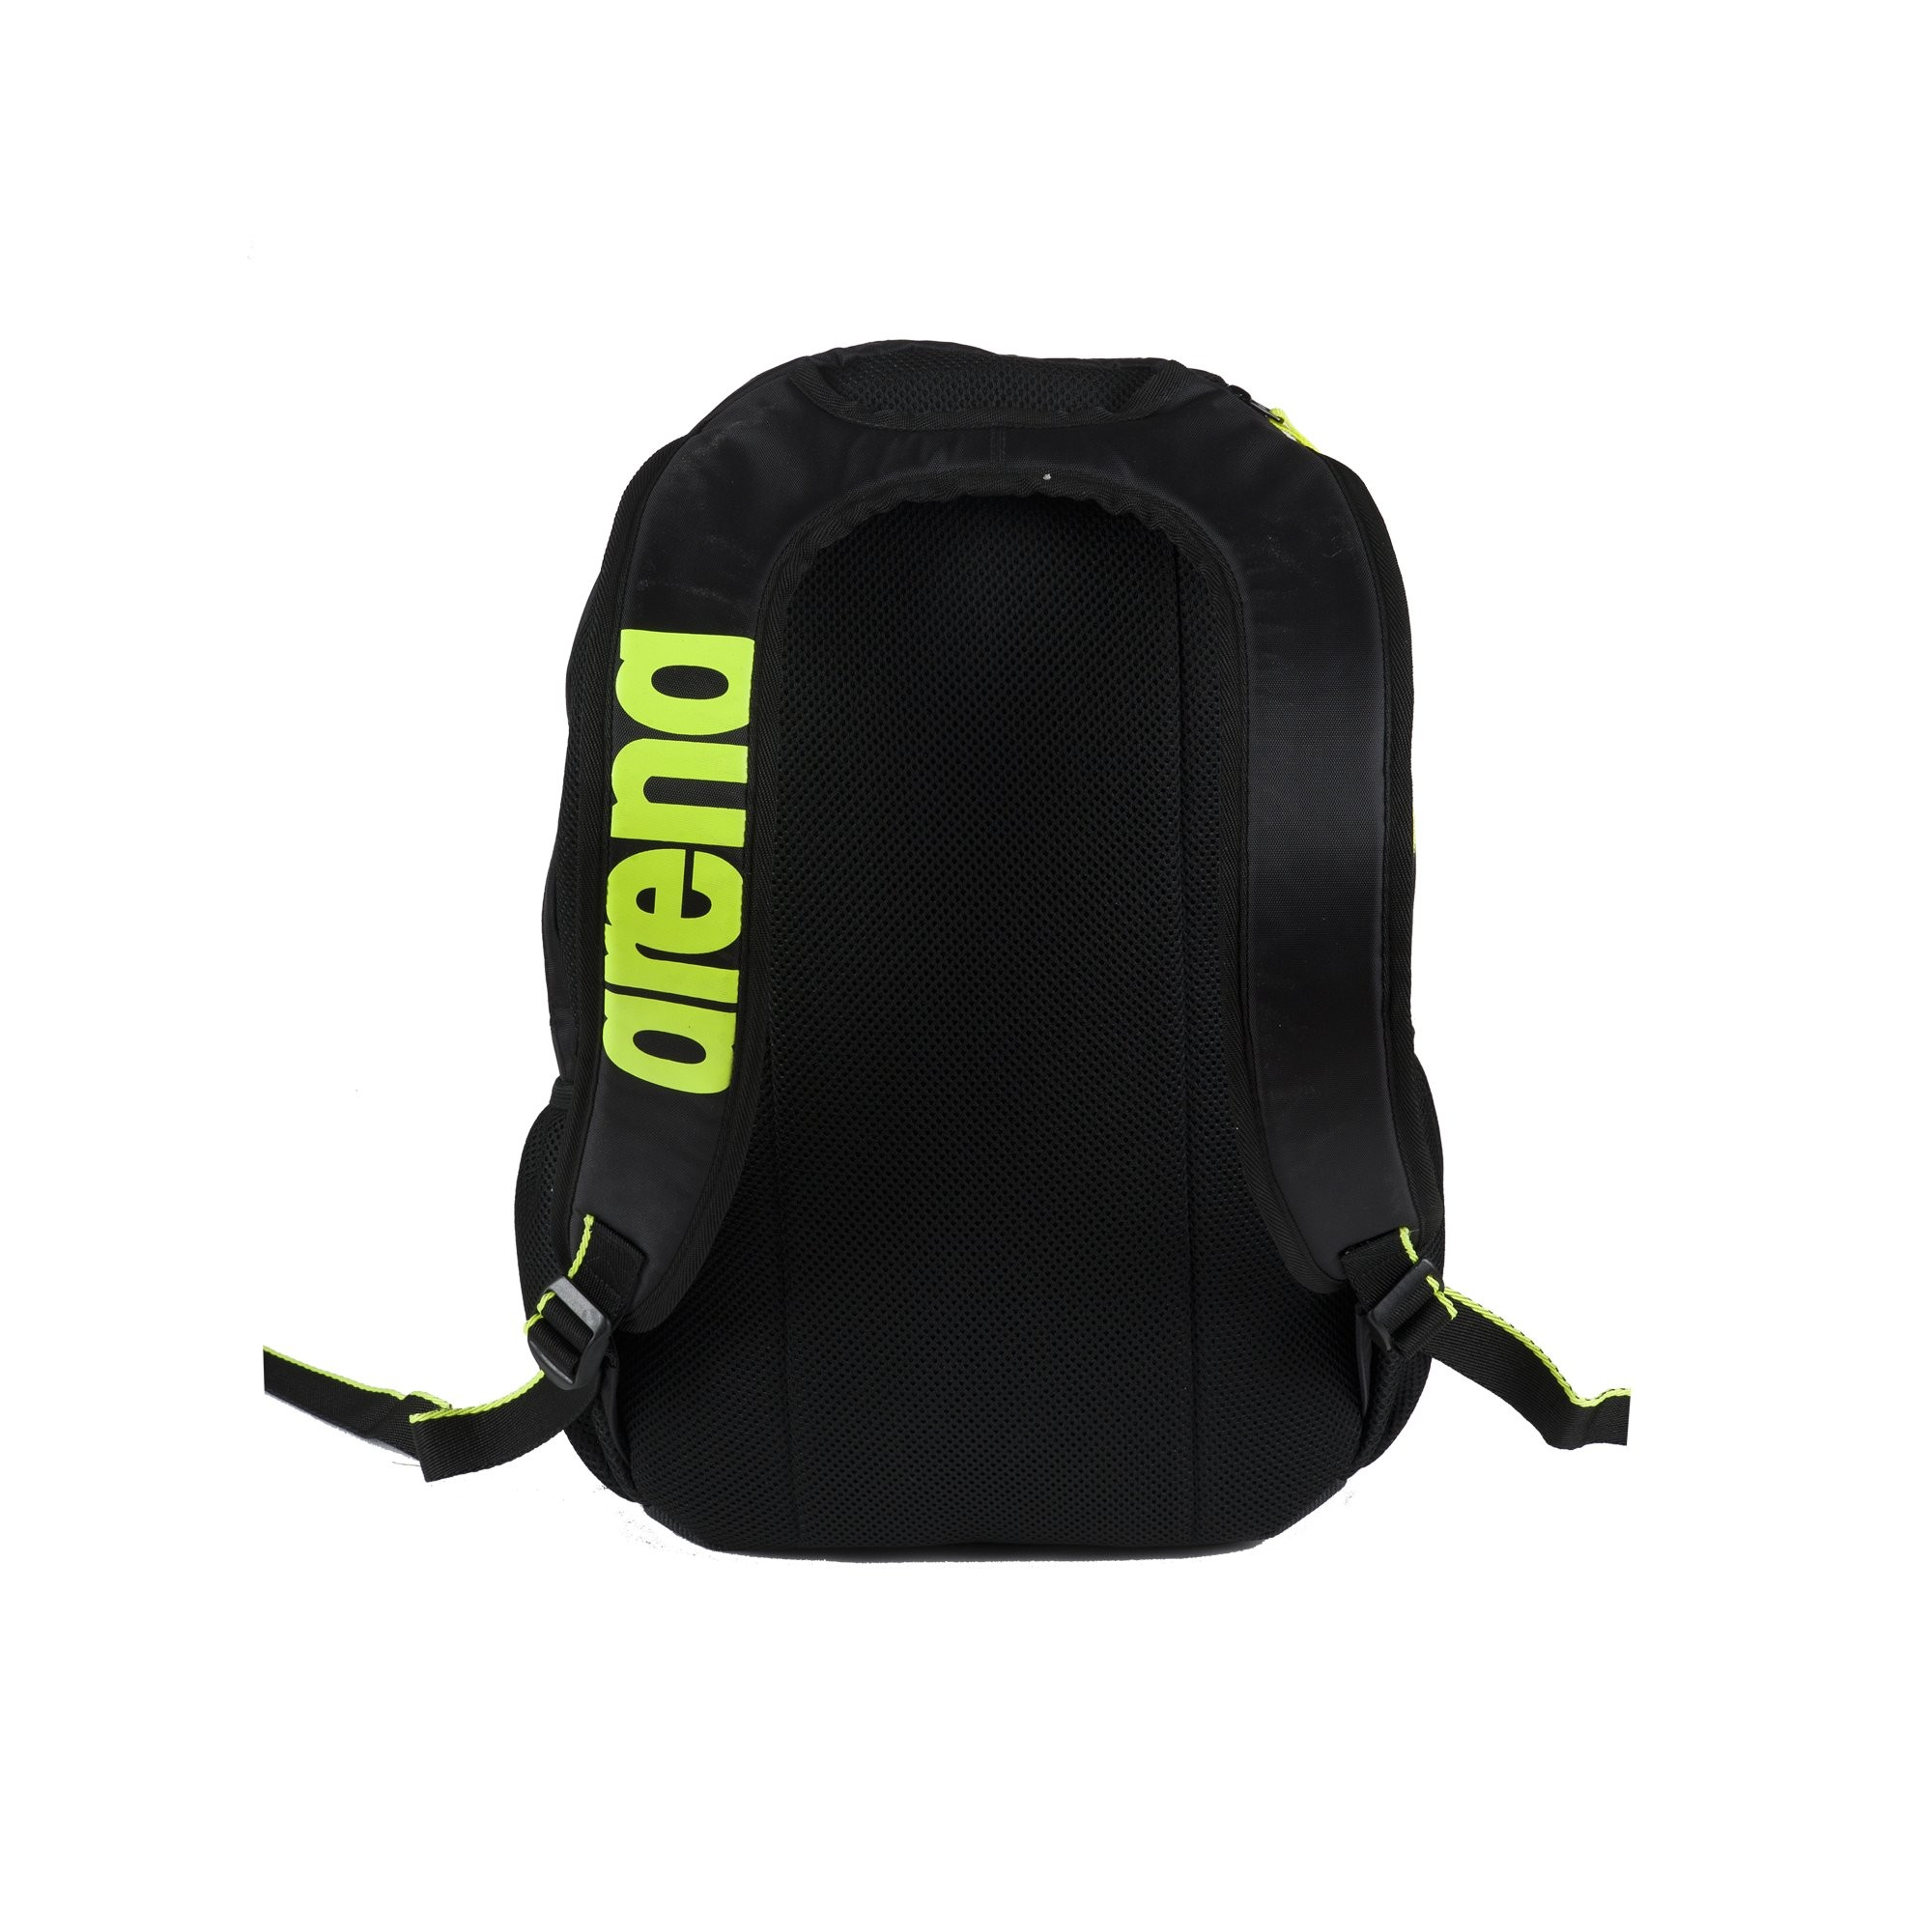 332db914f1 Рюкзак Arena Spiky 2 Backpack fluo yellow 1E005 53 купить   цена ...